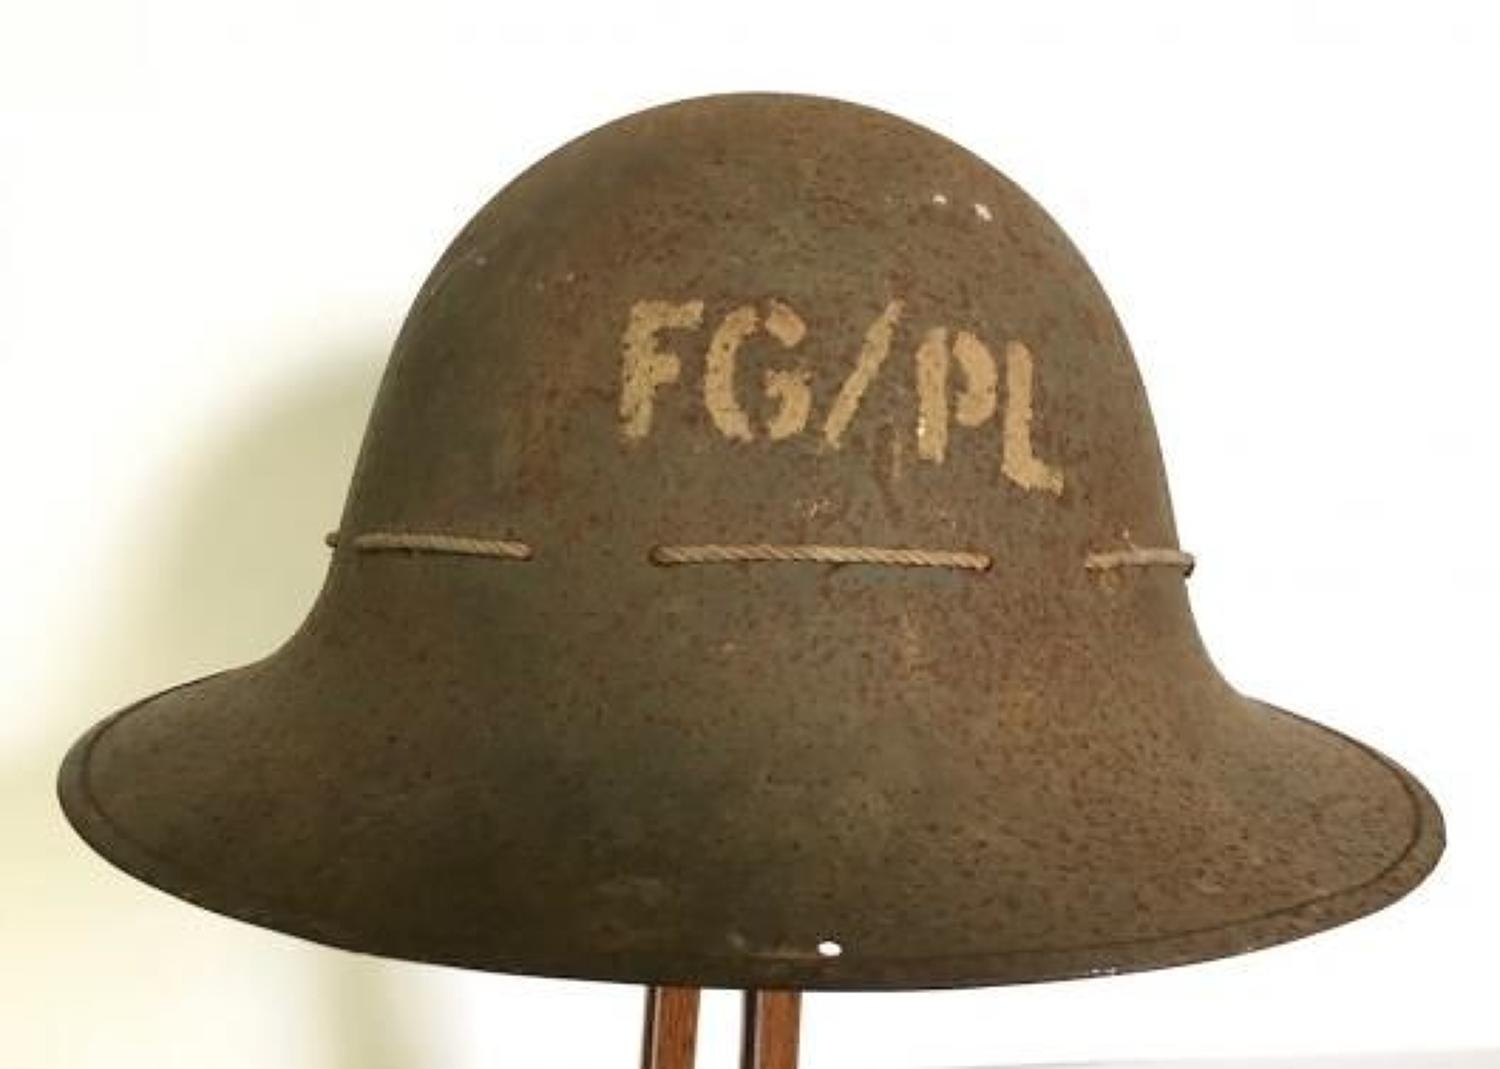 WW2 1941 Home Front ARP Helmet Possibly Plymouth.